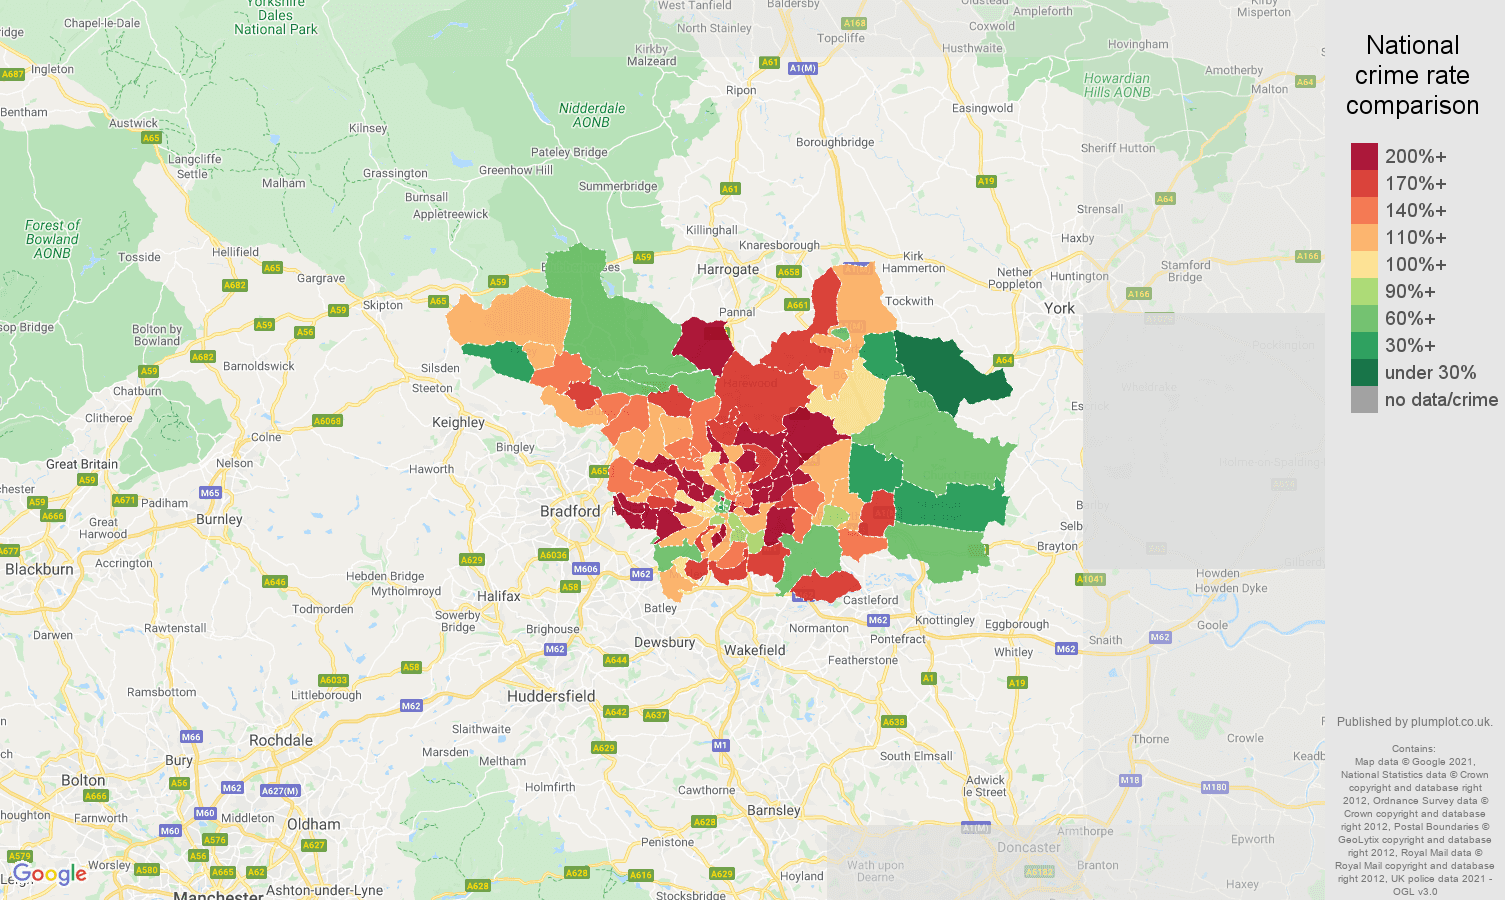 Leeds burglary crime rate comparison map